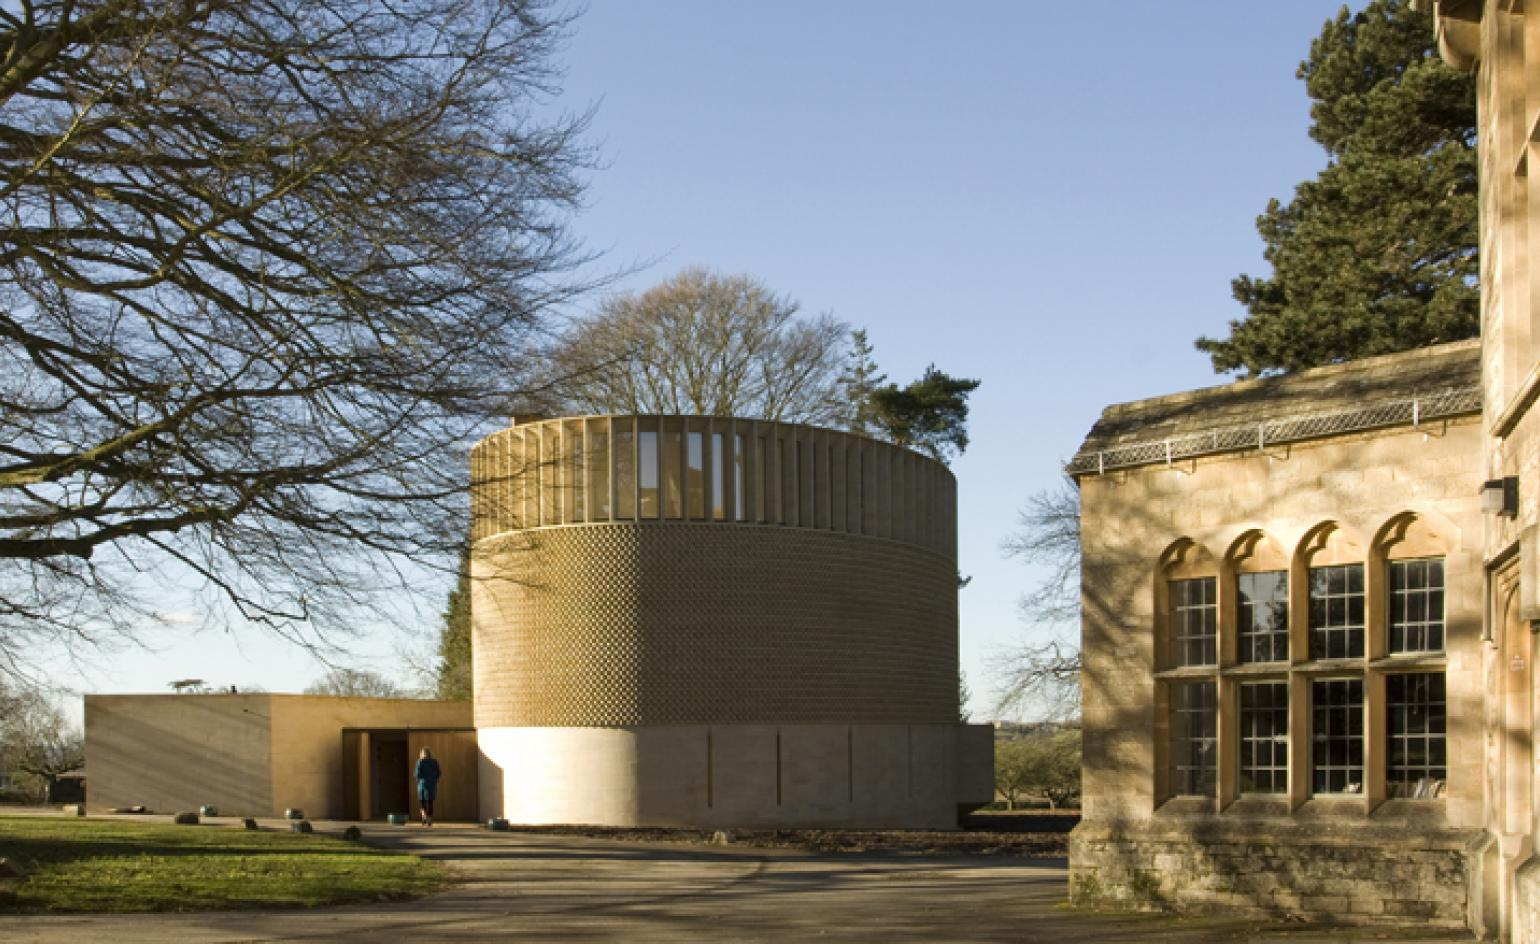 2013 RIBA Stirling Prize shortlist is announced